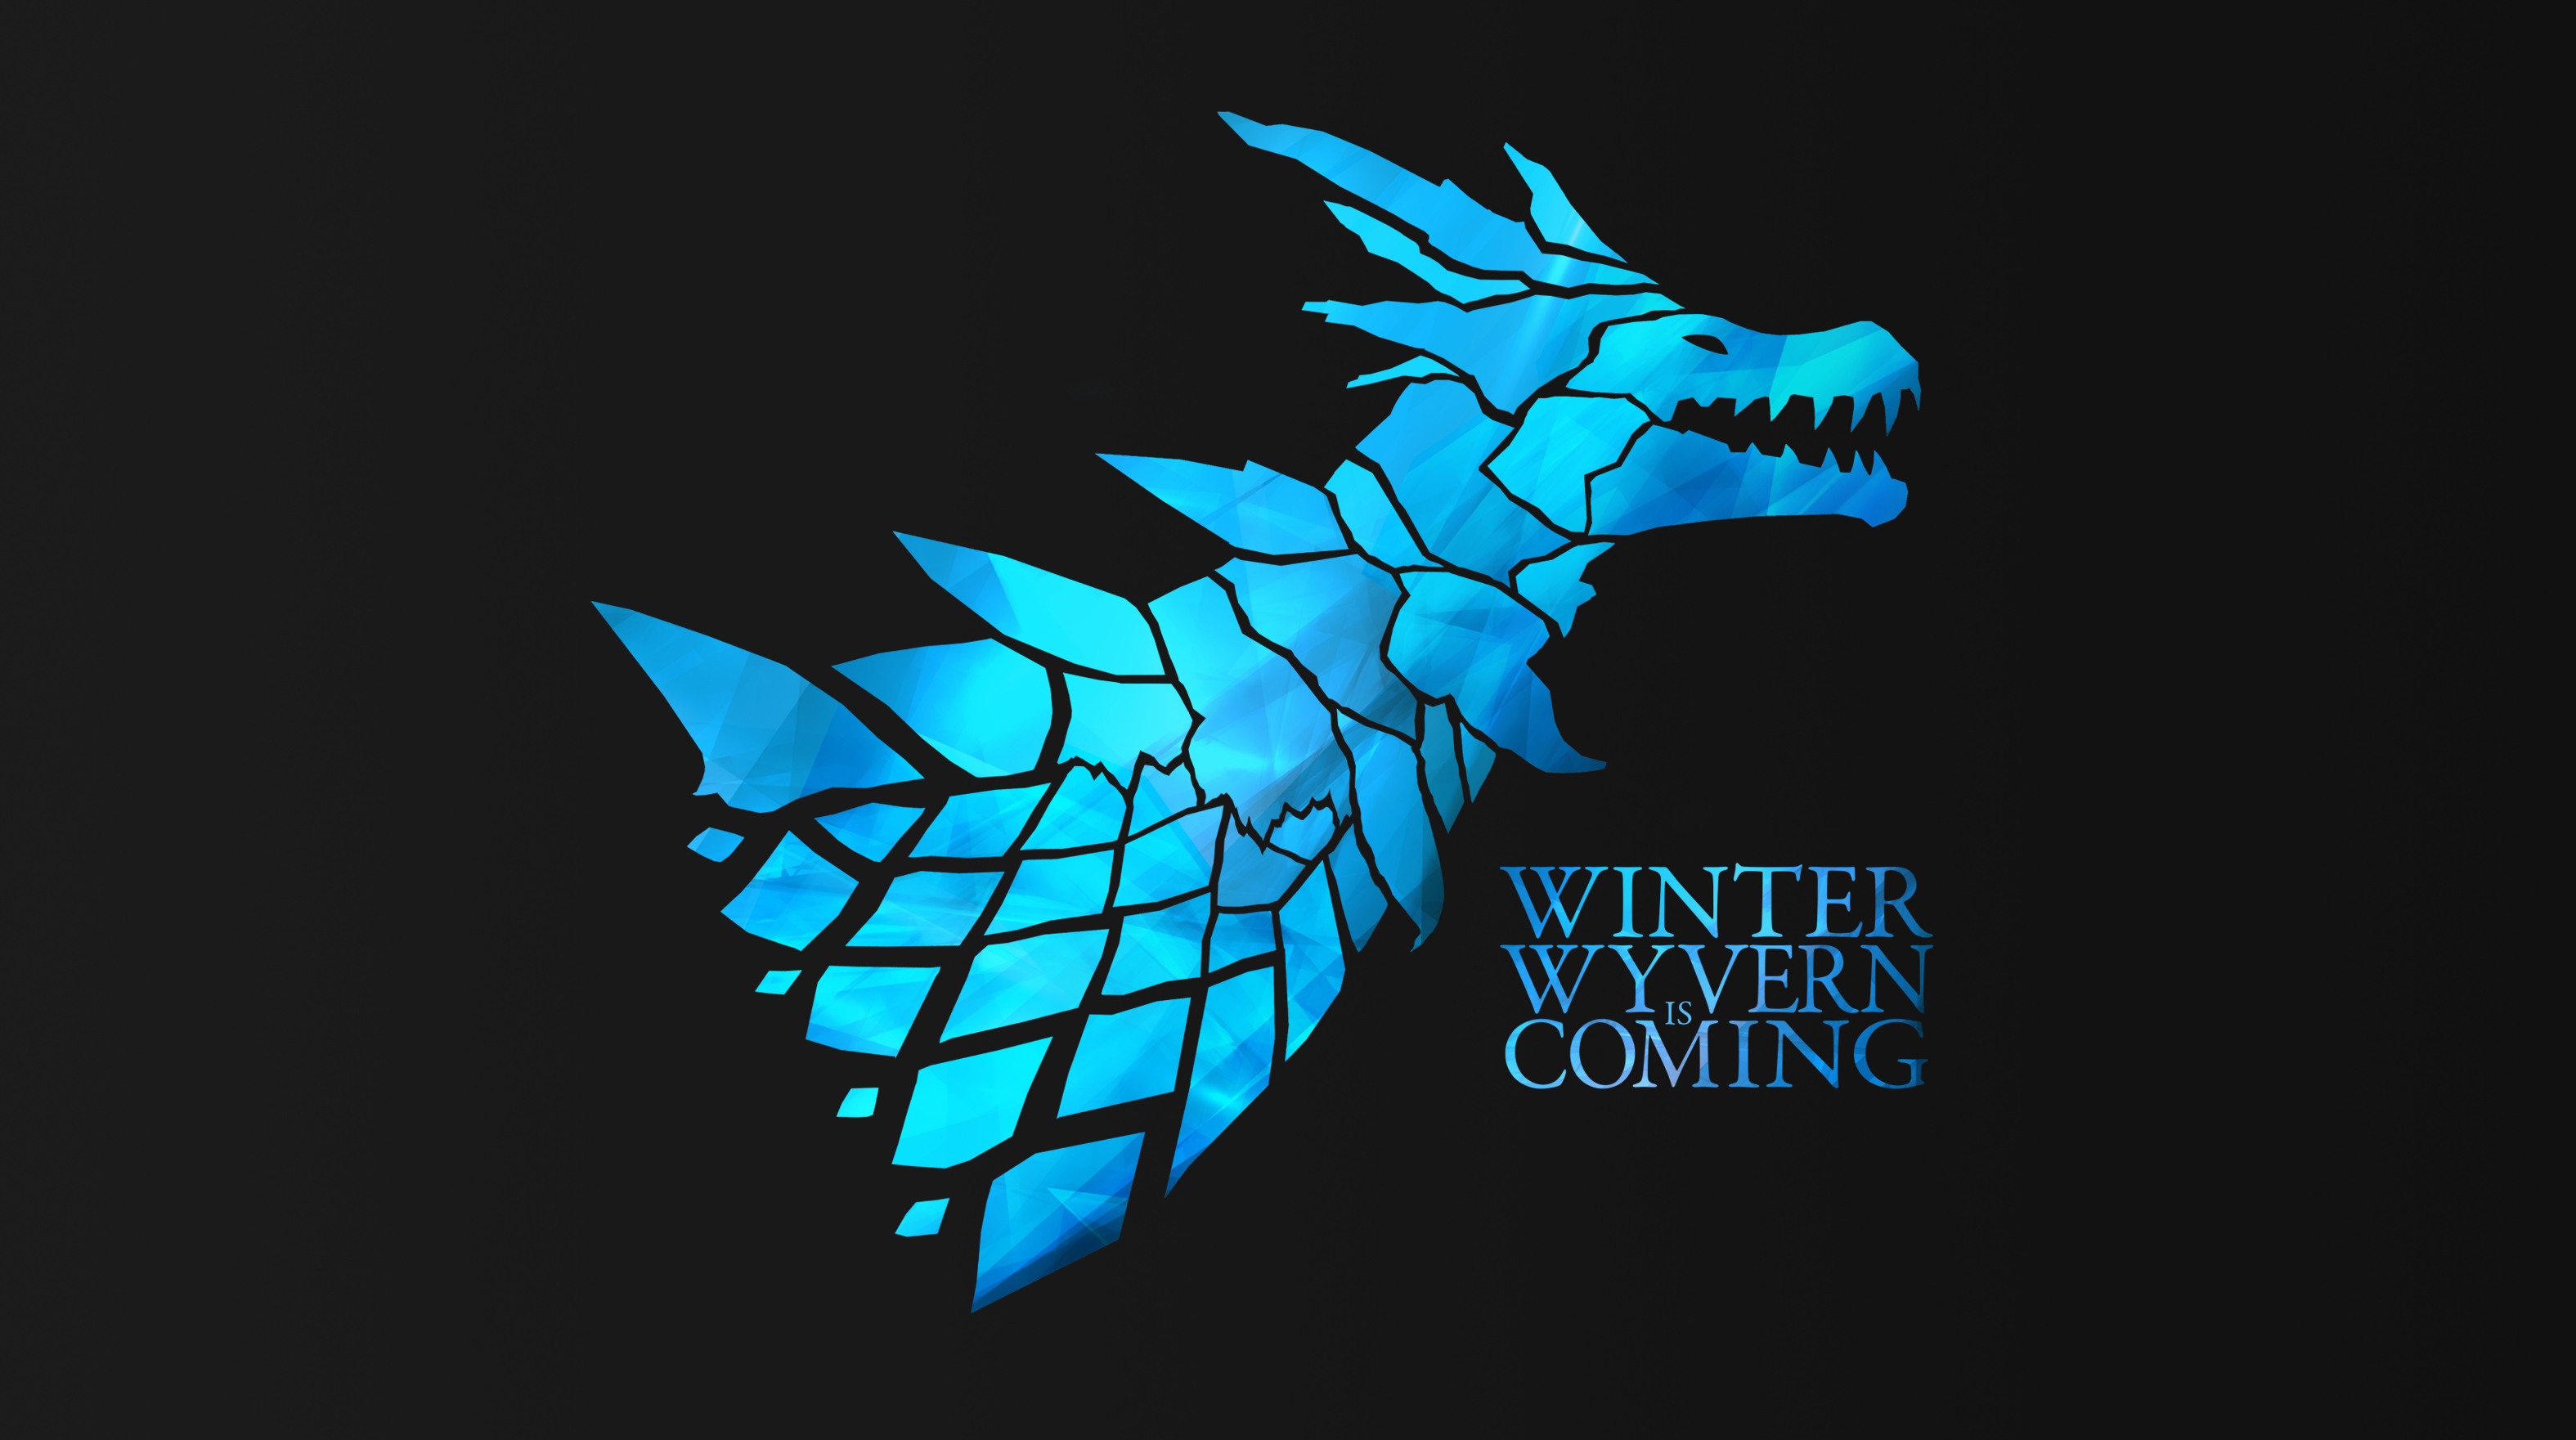 Winter Is Coming Poster Wallpapers Wallpaper Cave